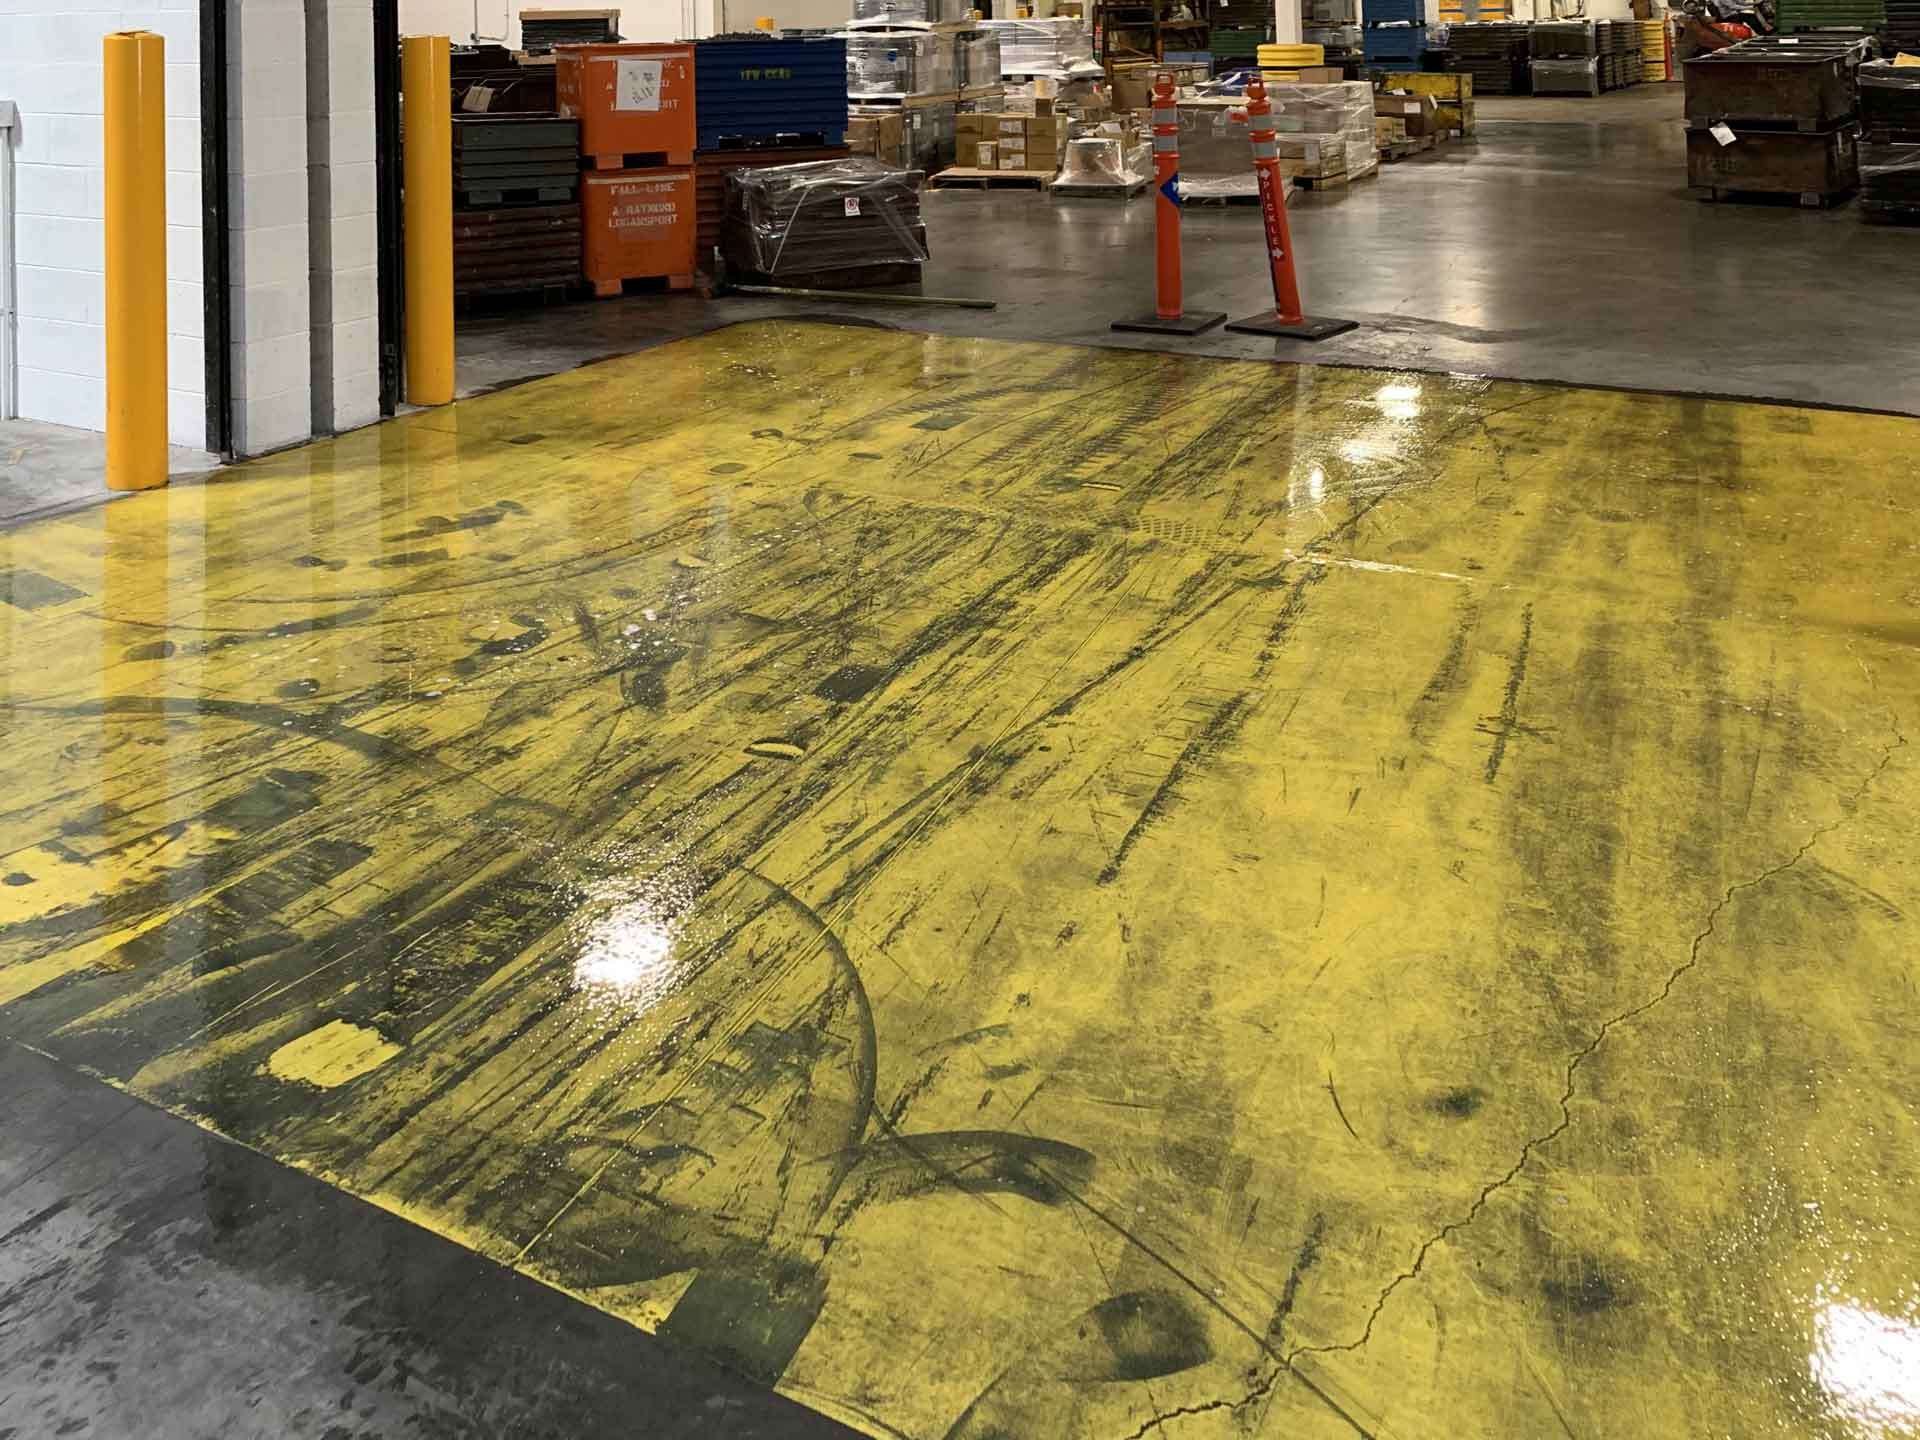 Warehouse Floor Markings Before Repainting